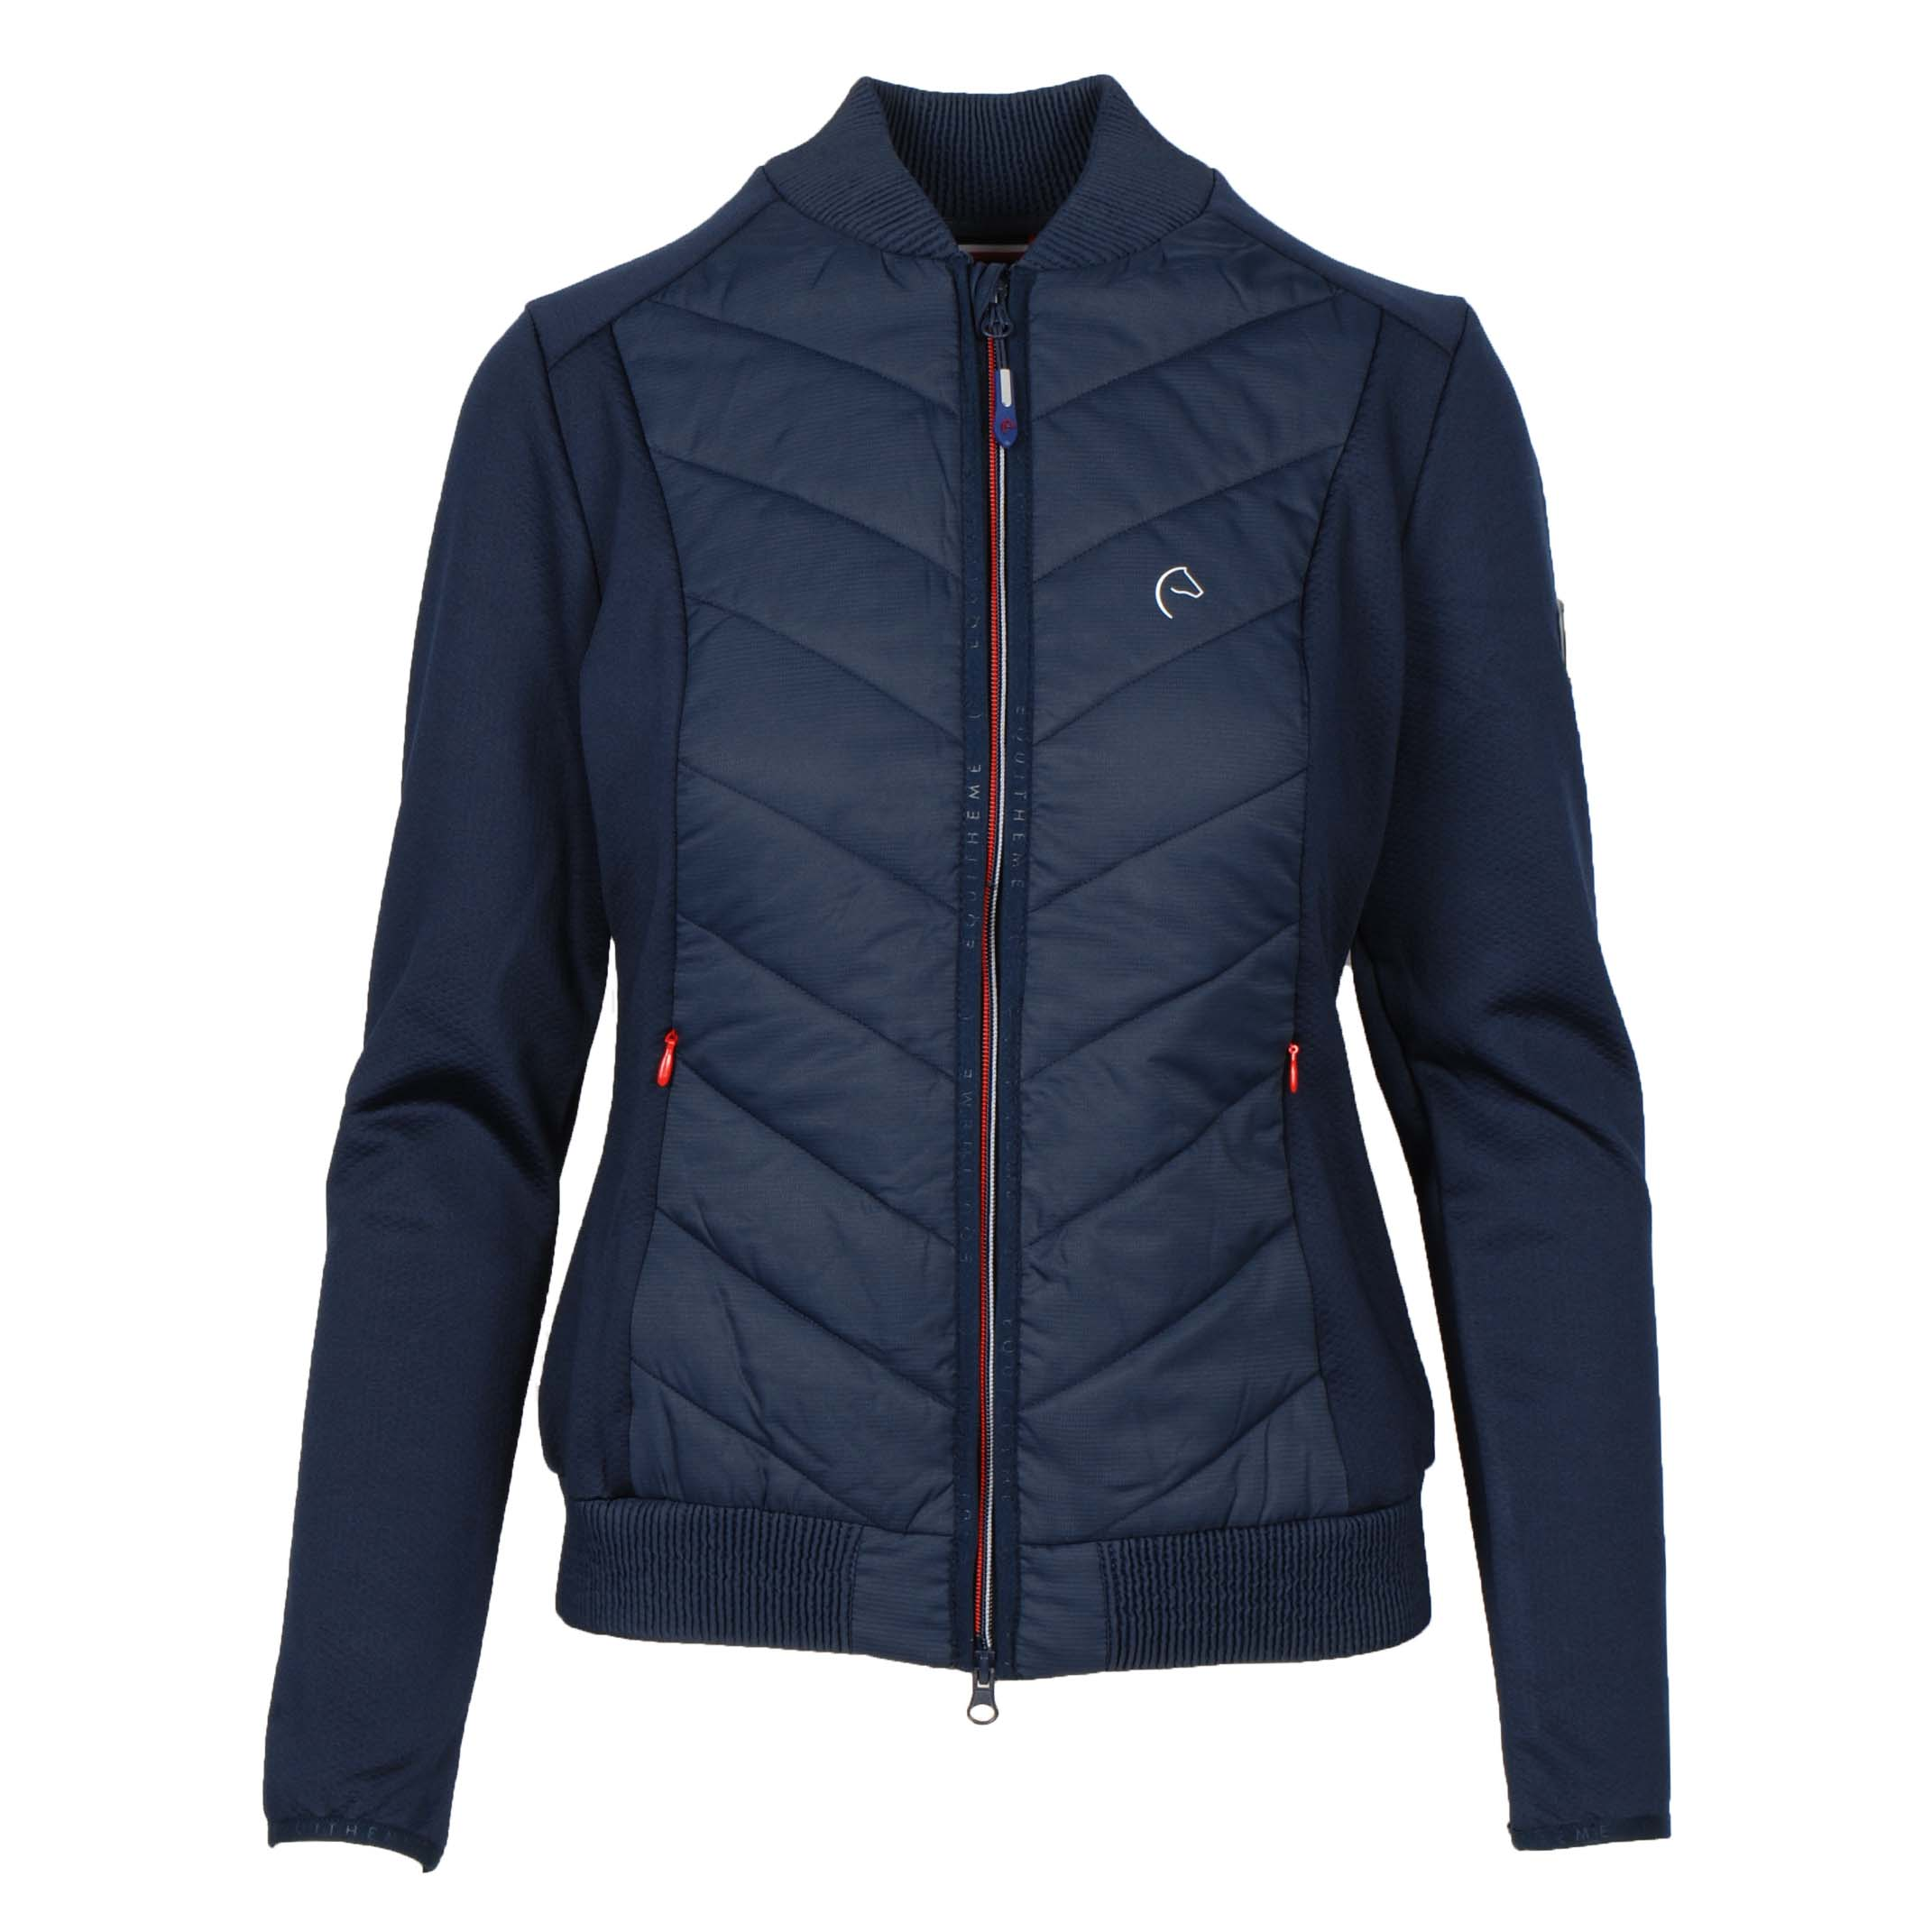 Equi Theme Aby techvest donkerblauw maat:xl